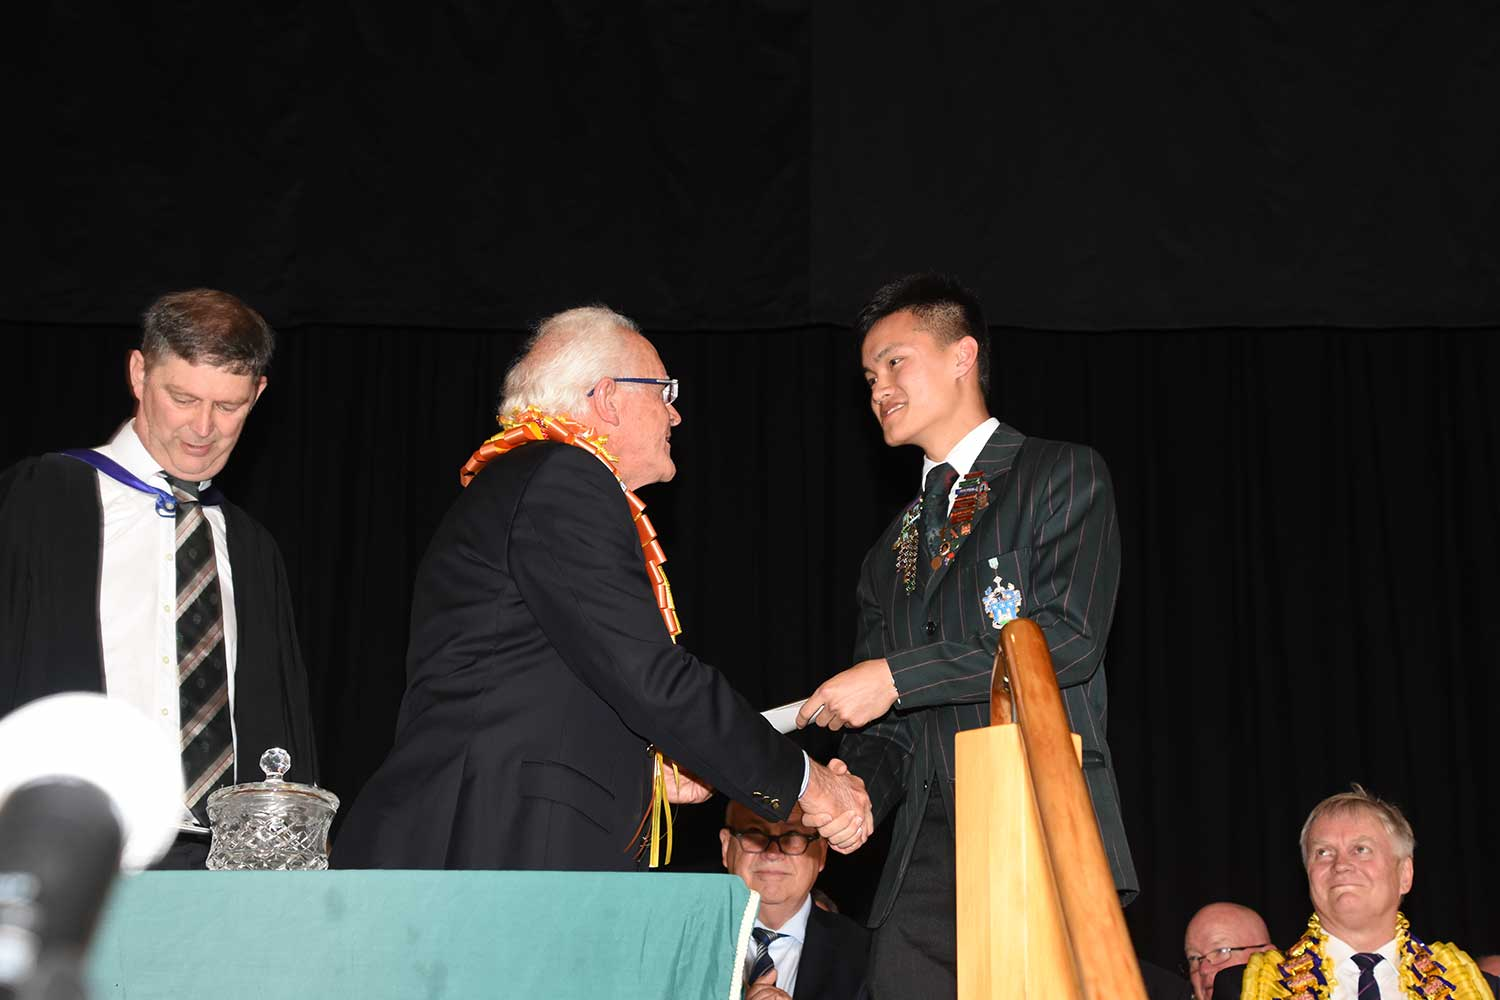 Daniel Lee, Dilworth Prize Giving 2016